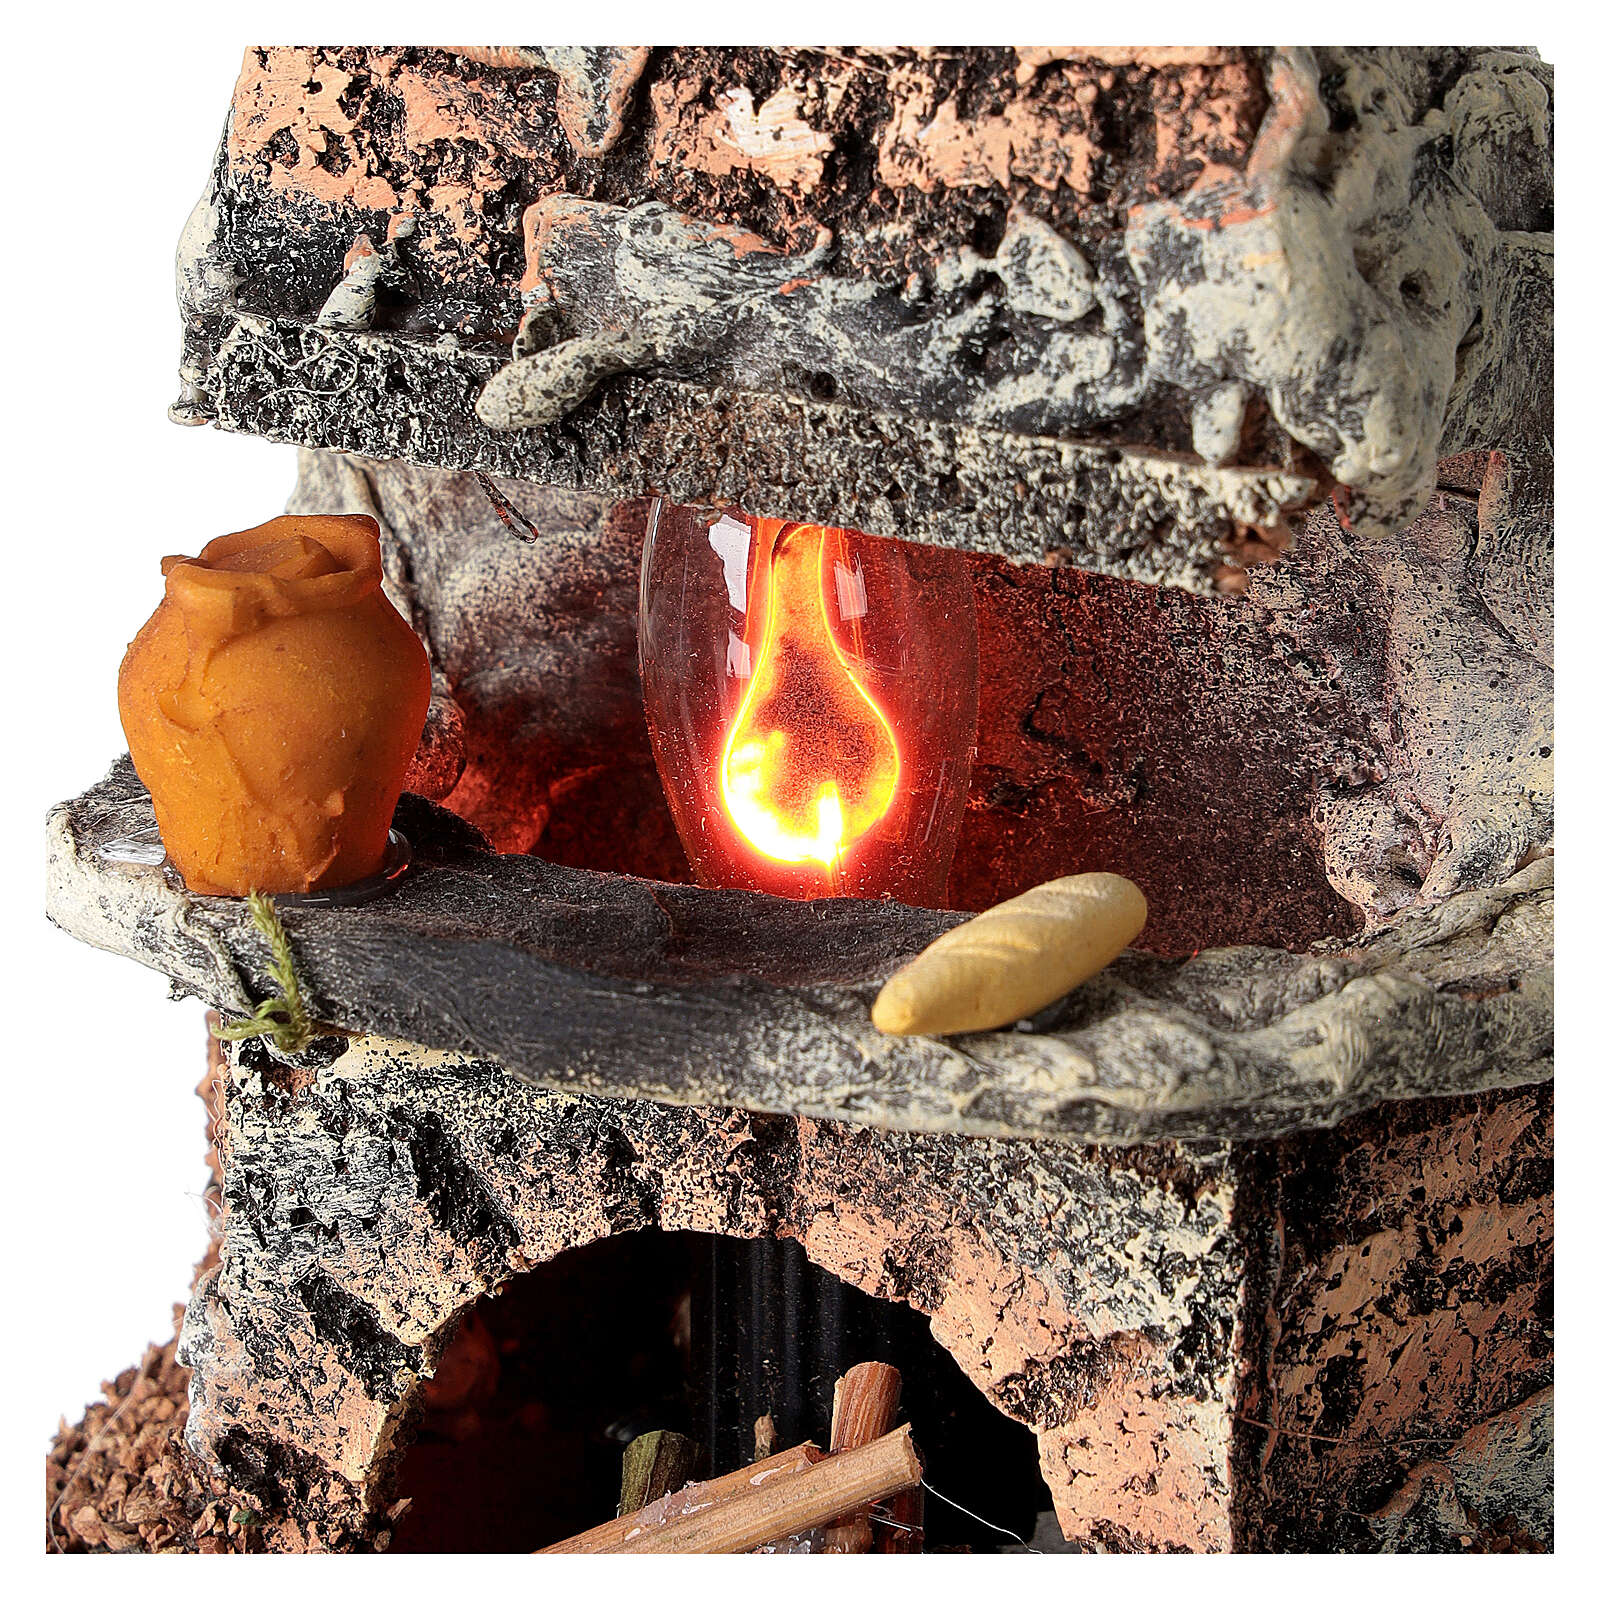 Oven with flame effect light for Nativity Scene with 8-10 cm figurines 4